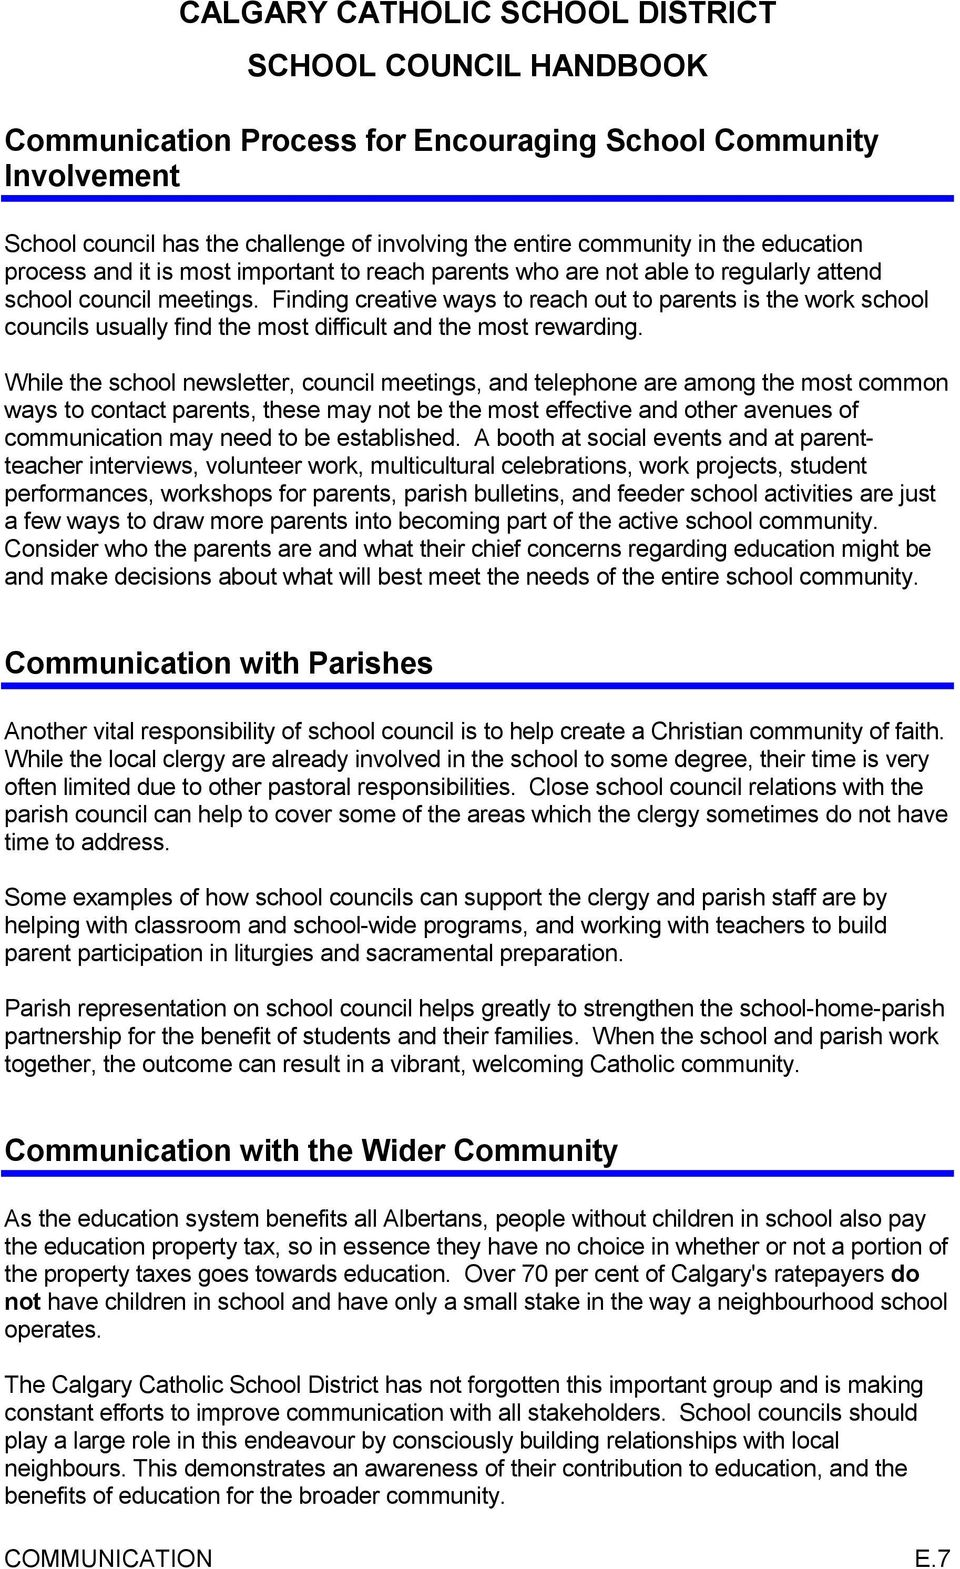 While the school newsletter, council meetings, and telephone are among the most common ways to contact parents, these may not be the most effective and other avenues of communication may need to be